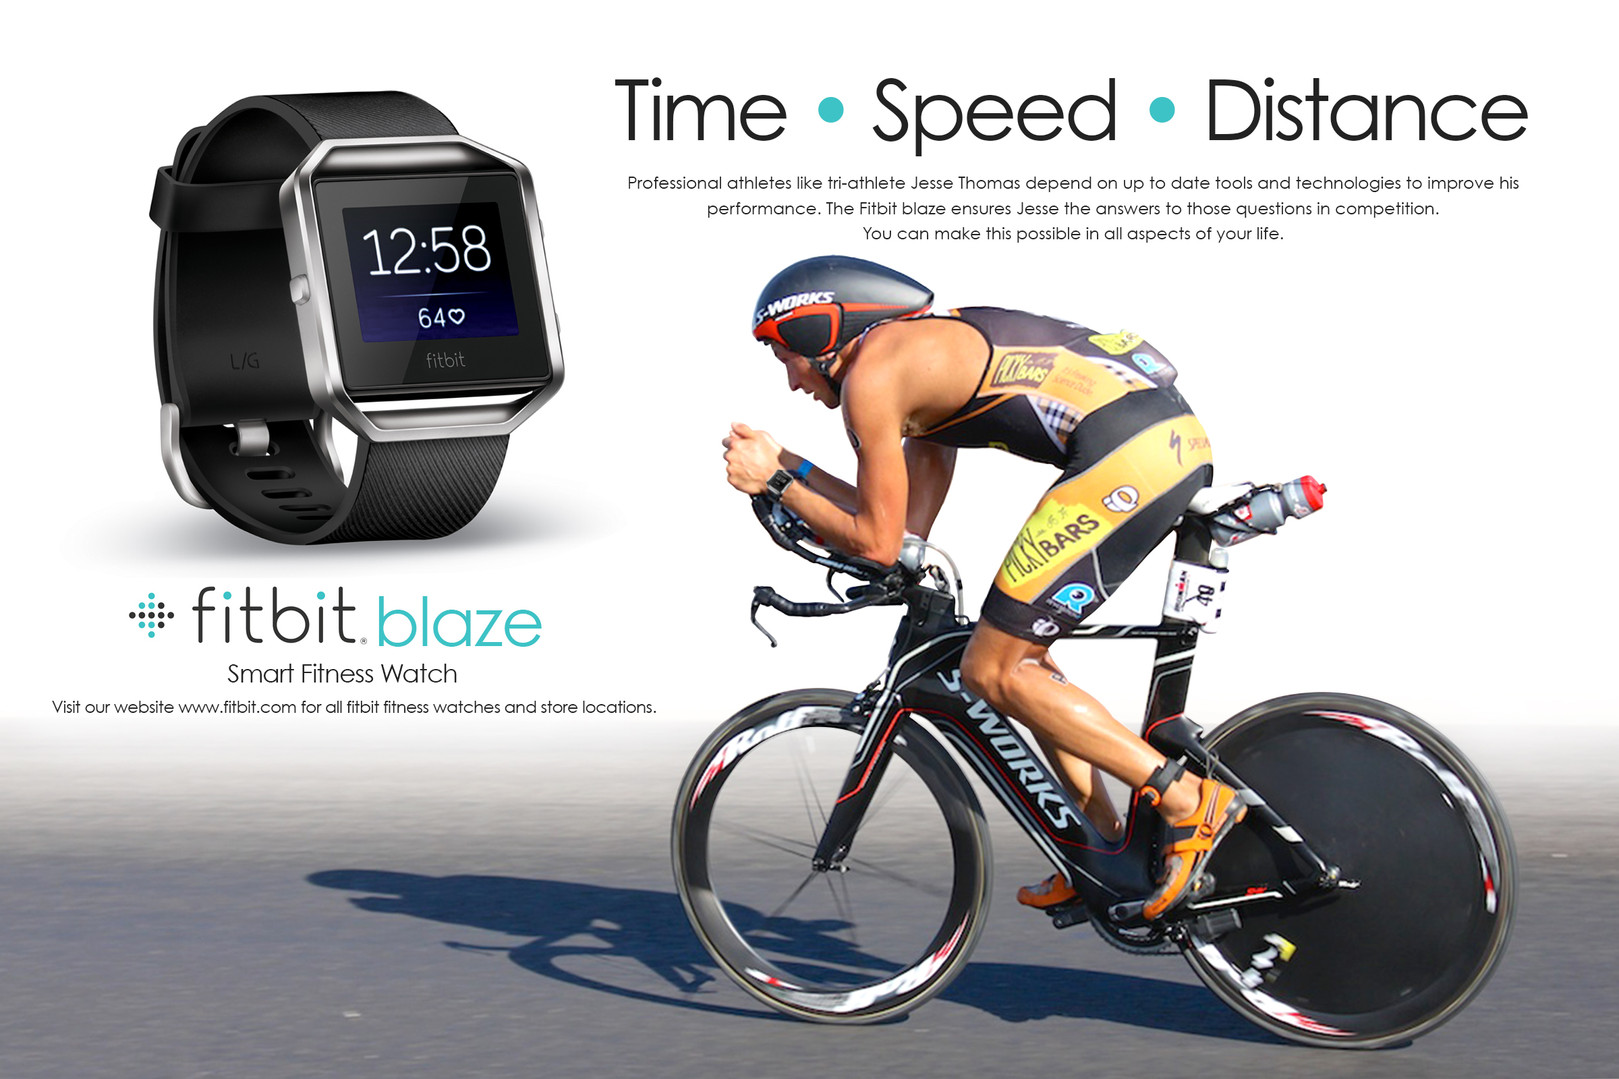 Fitbit Watch cyclist ad.jpg